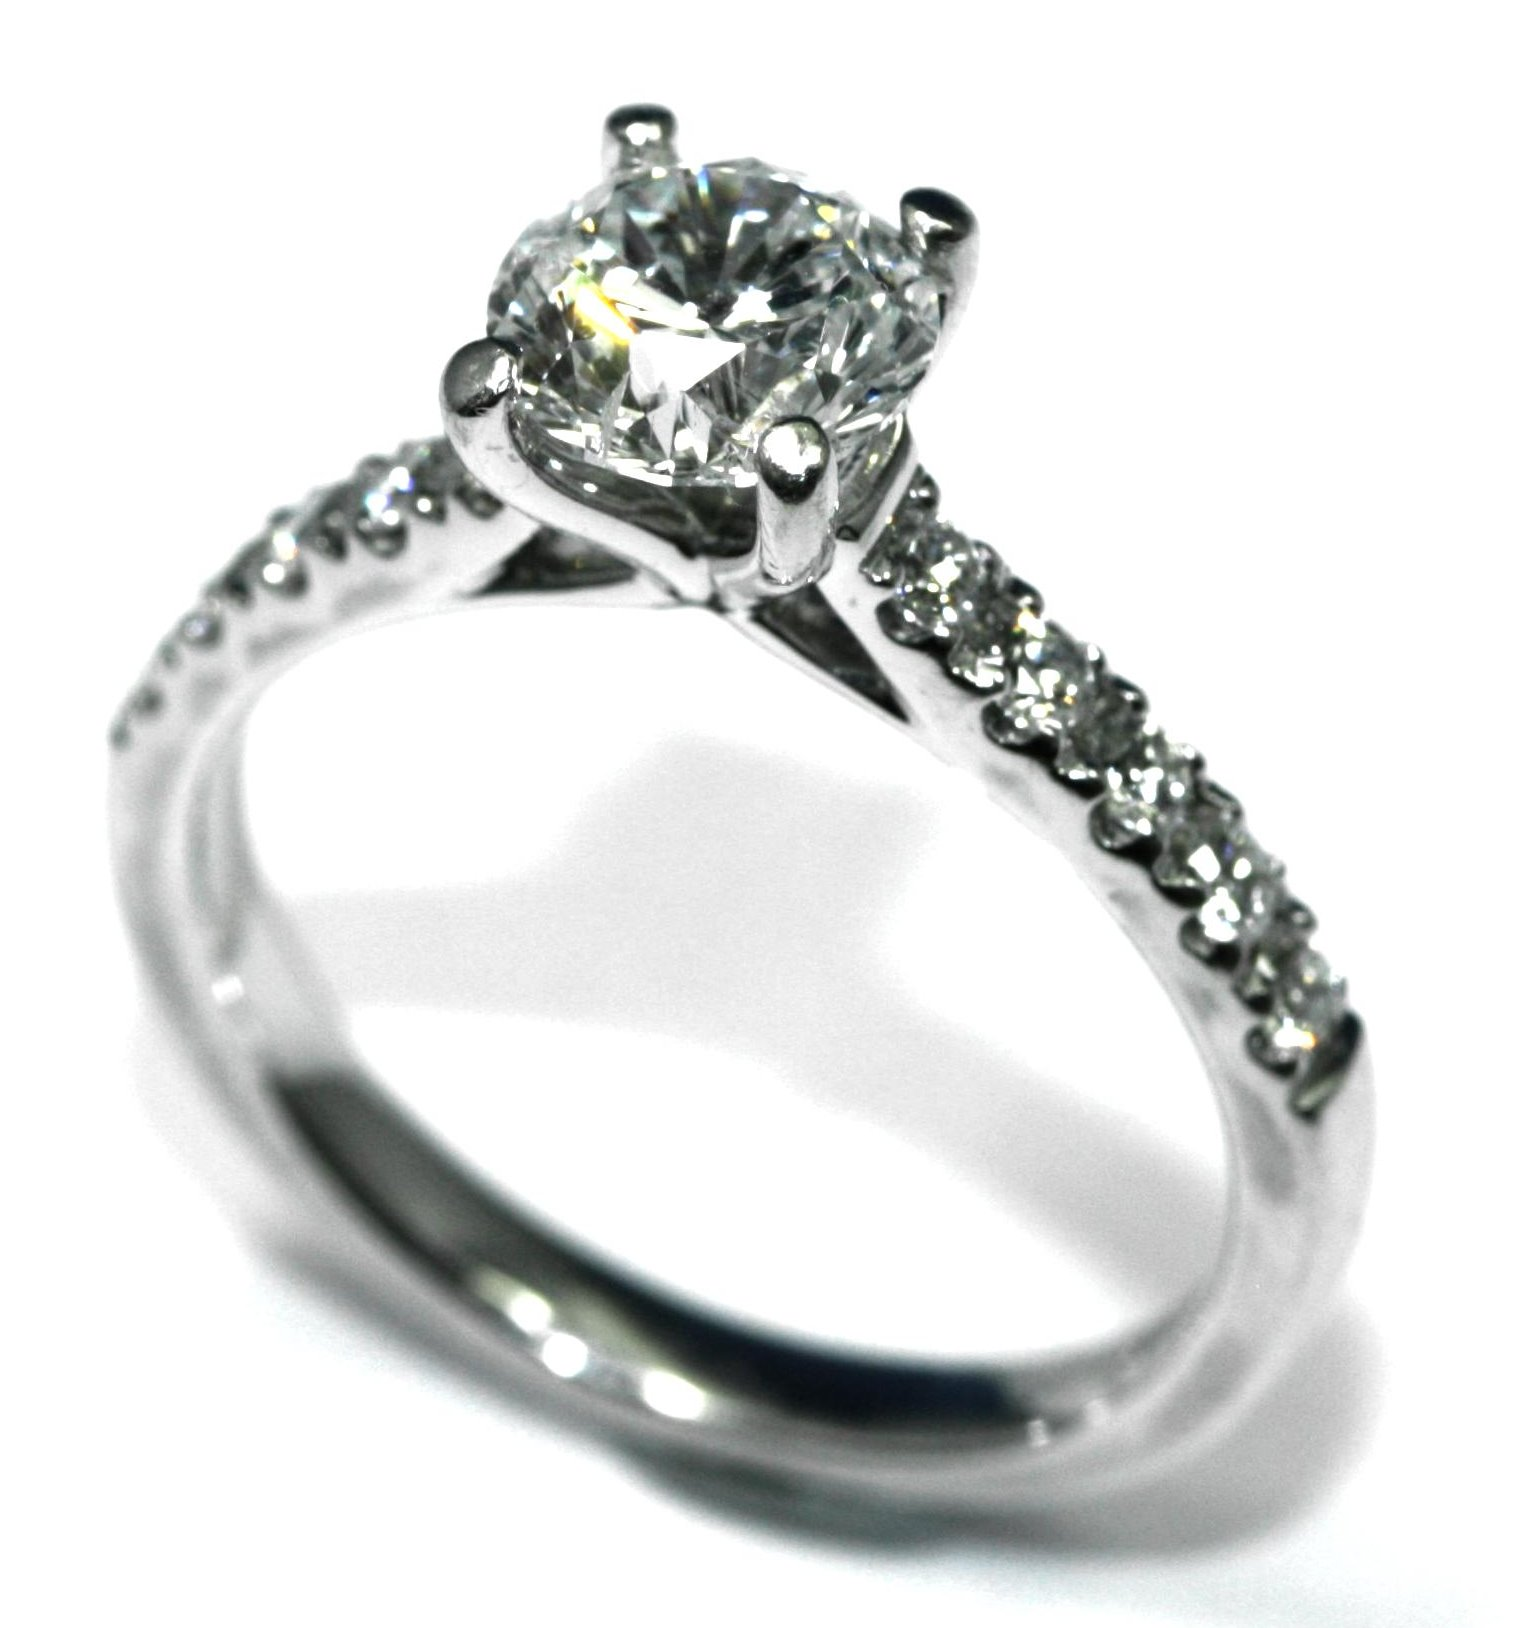 wedding en ct tw gold zoom pre mv kay owned rings previously ring yellow zm hover to diamonds kaystore